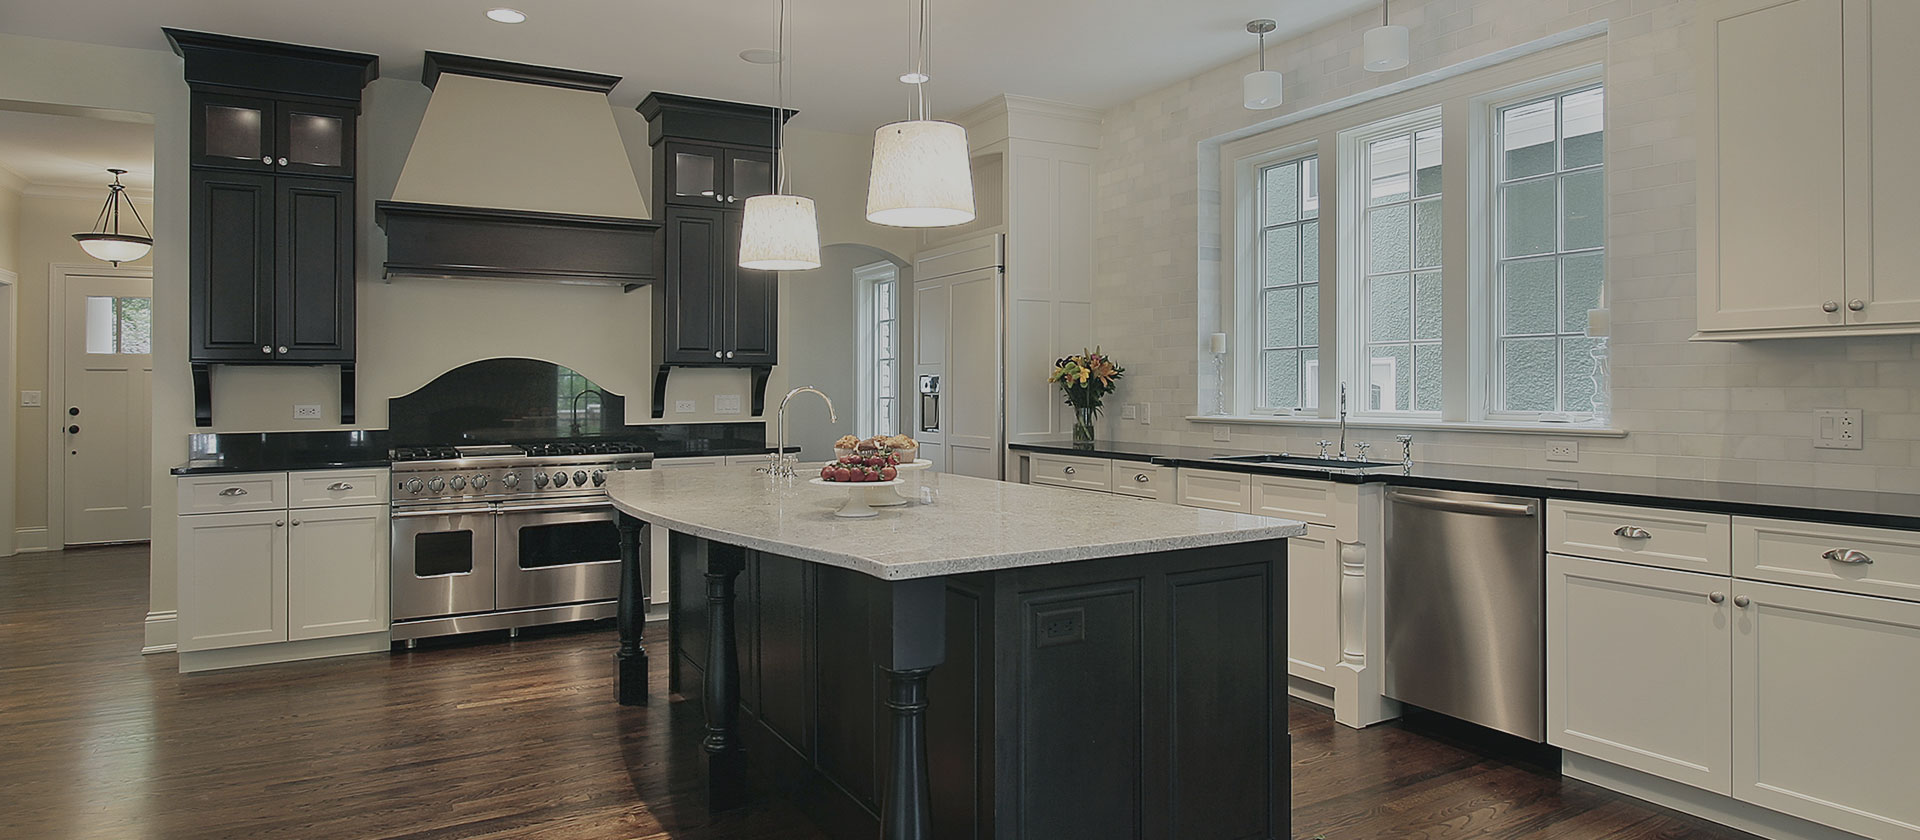 Bathroom Remodel Order Of Operations : Shaker kitchen cabinets amazing cabinetry mission viejo